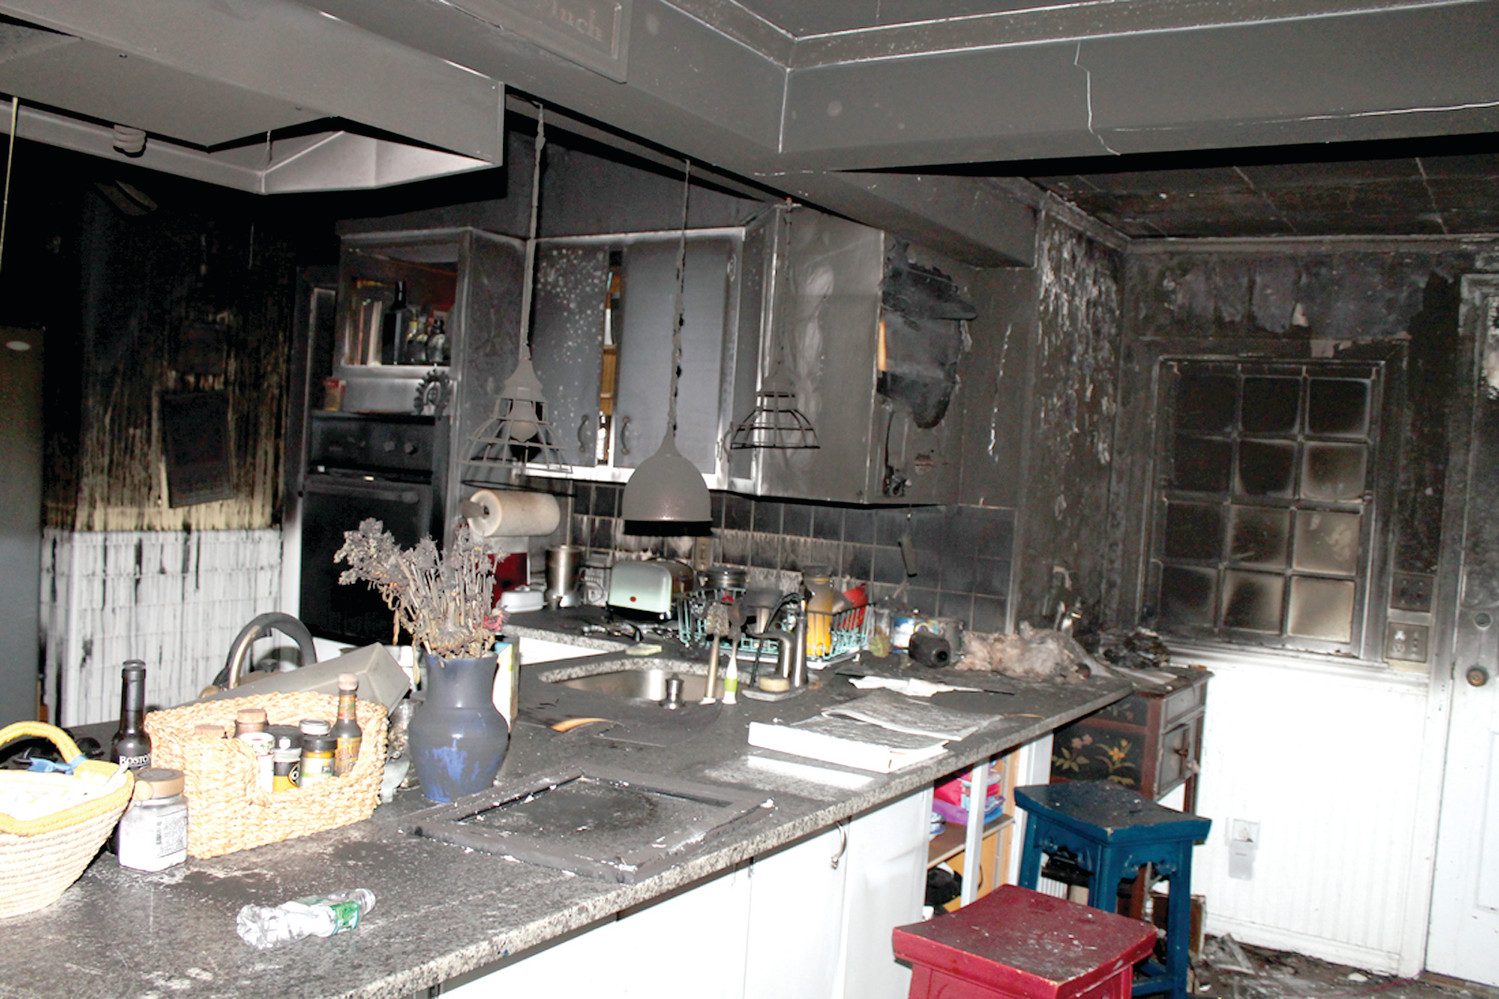 AFTERMATH: The inside of the Colantuono house following a fire which has forced the family to temporarily relocate.